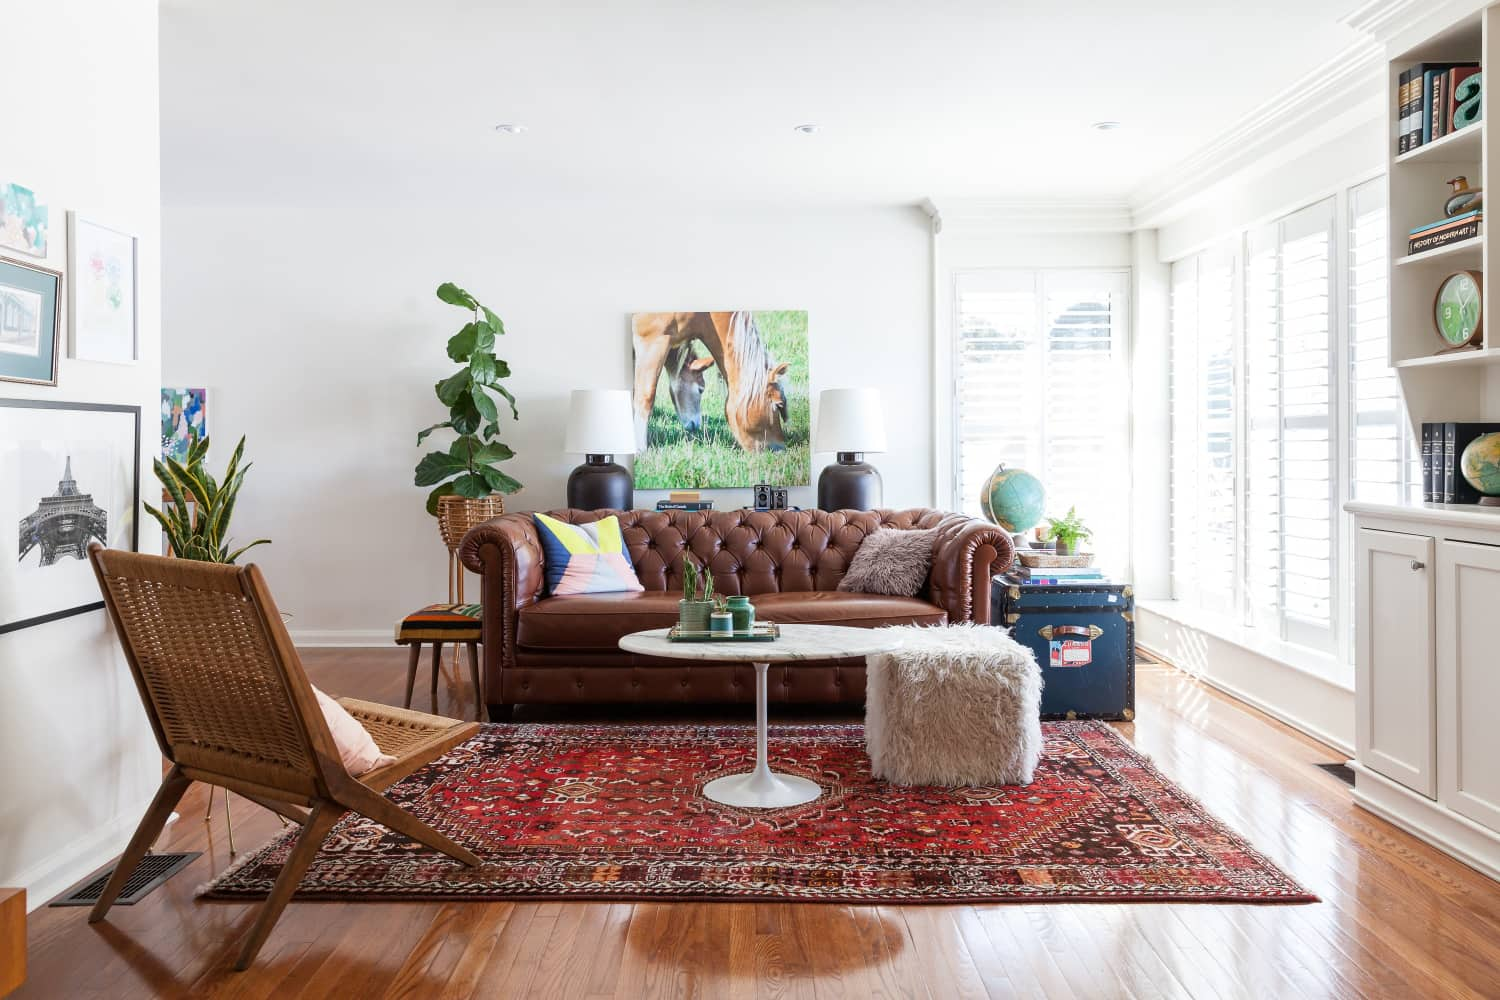 8 of the Best Etsy Shops For Antique & Vintage Rugs